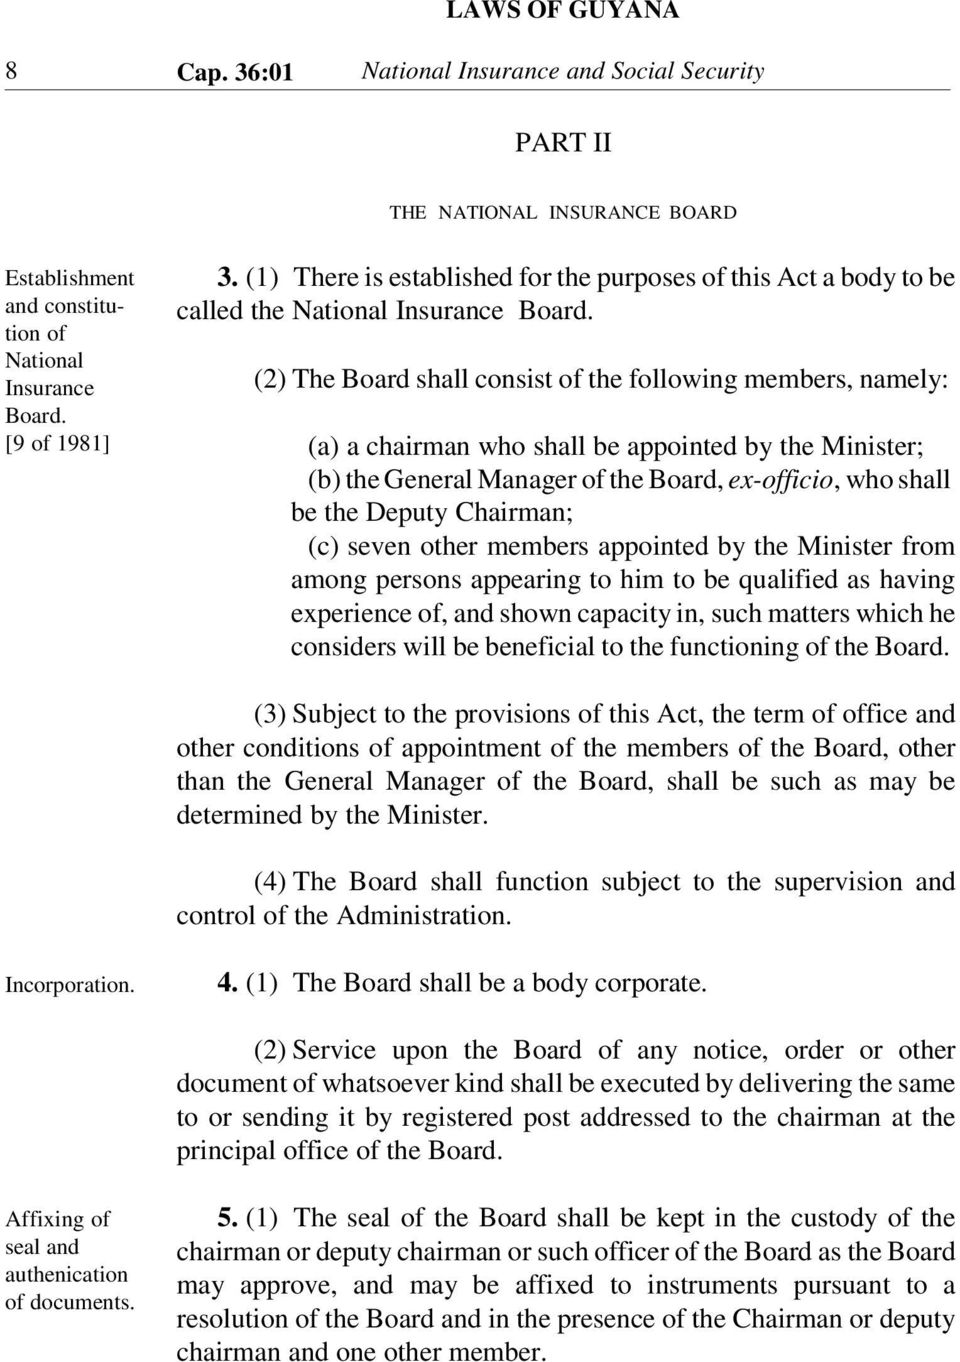 (2) The Board shall consist of the following members, namely: (a) a chairman who shall be appointed by the Minister; (b) the General Manager of the Board, ex-officio, who shall be the Deputy